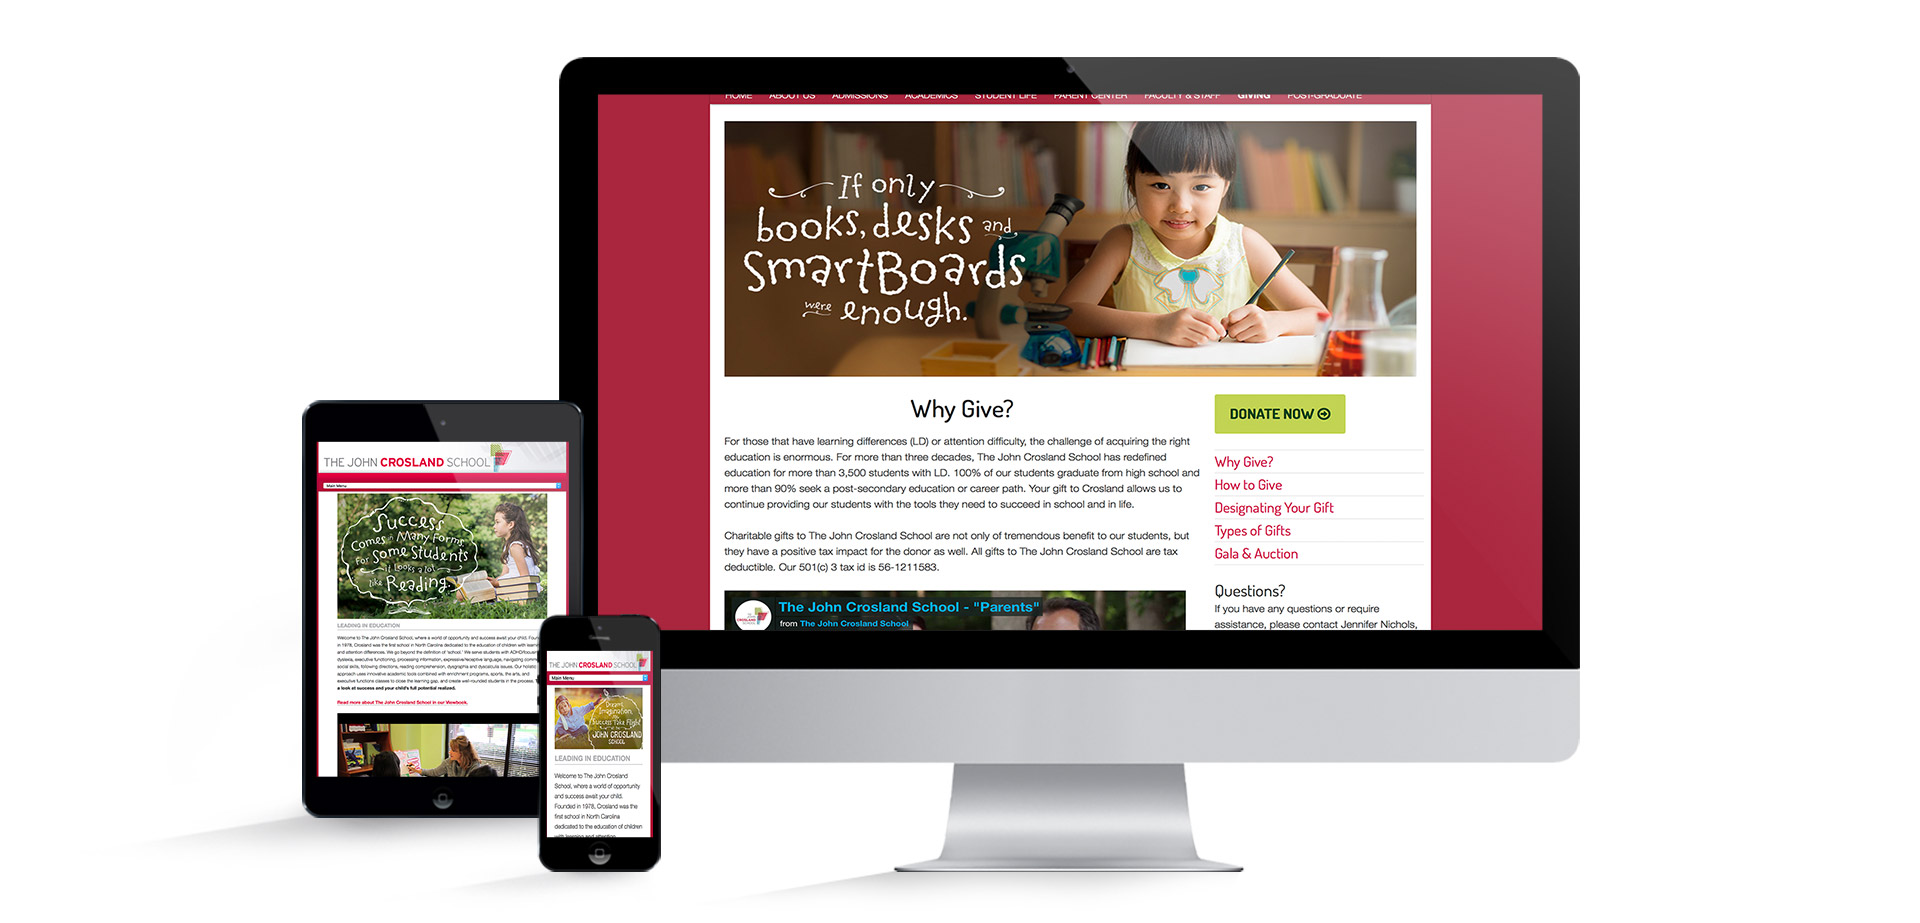 The John Crosland School Website